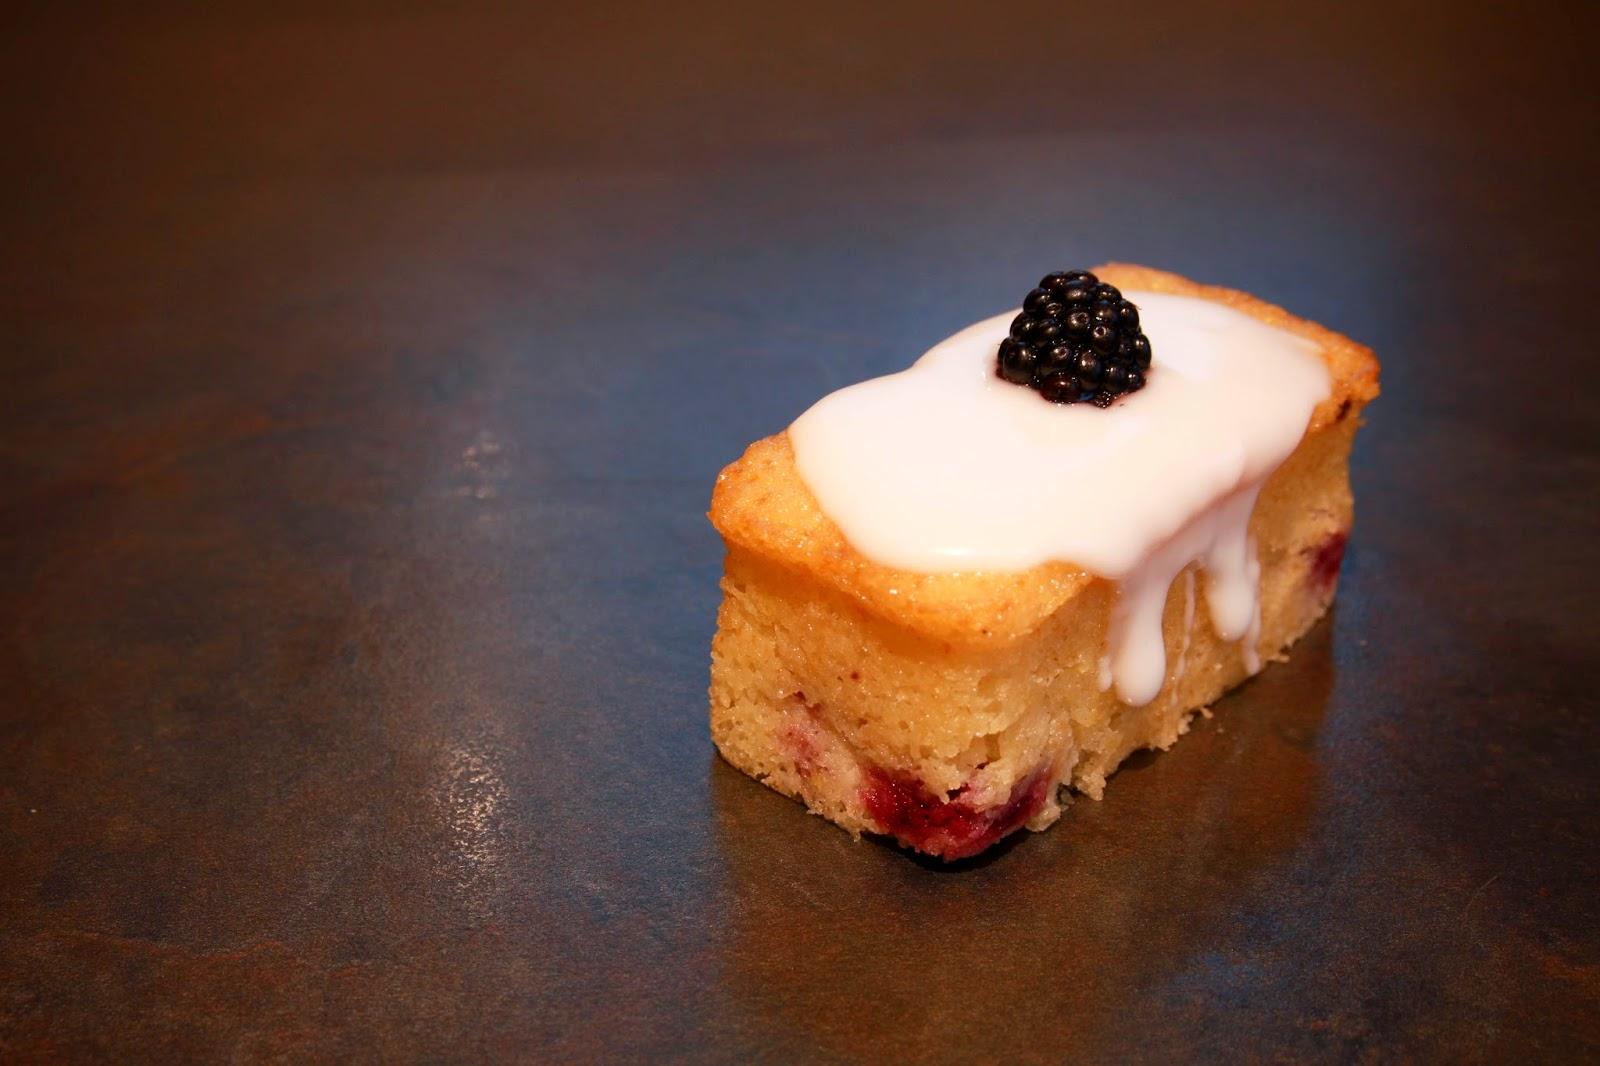 Blackberry and yoghurt mini loaf cake topped with lemon icing and a blackberry